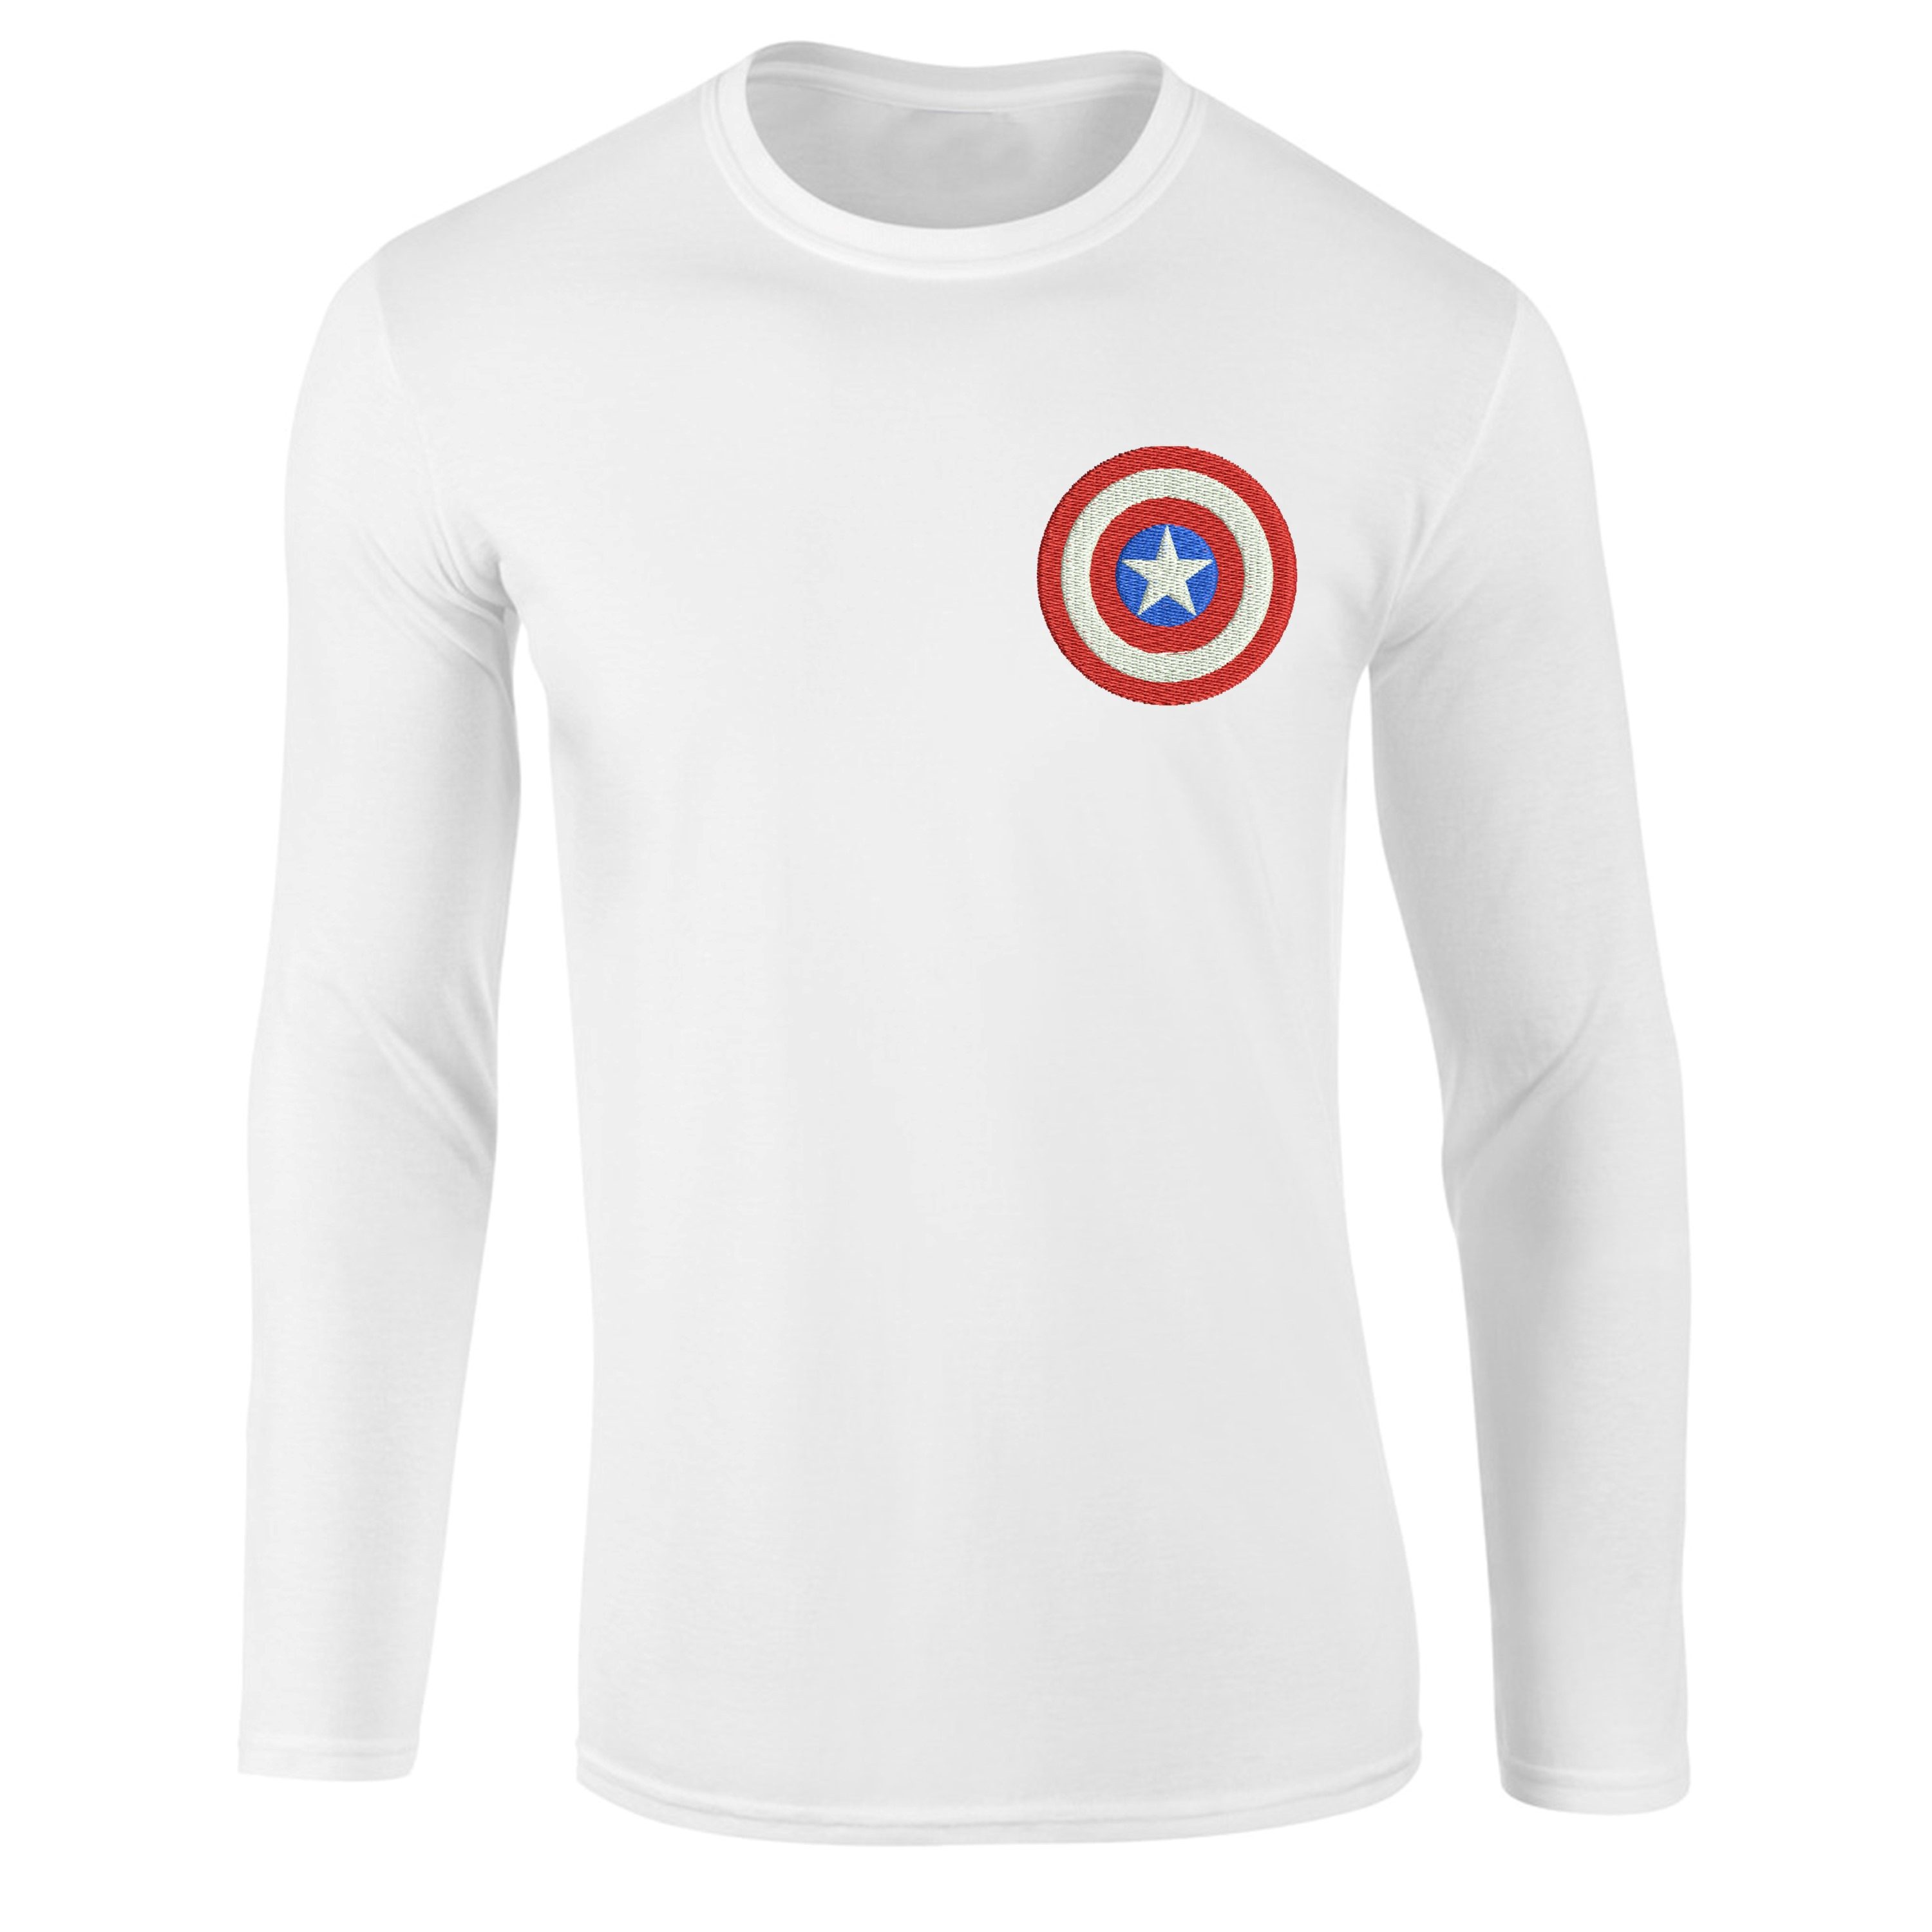 Captain-America-Logo-T-shirt-Superhero-Marvel-Comics-Embroidered-Longsleeve-Top miniature 5